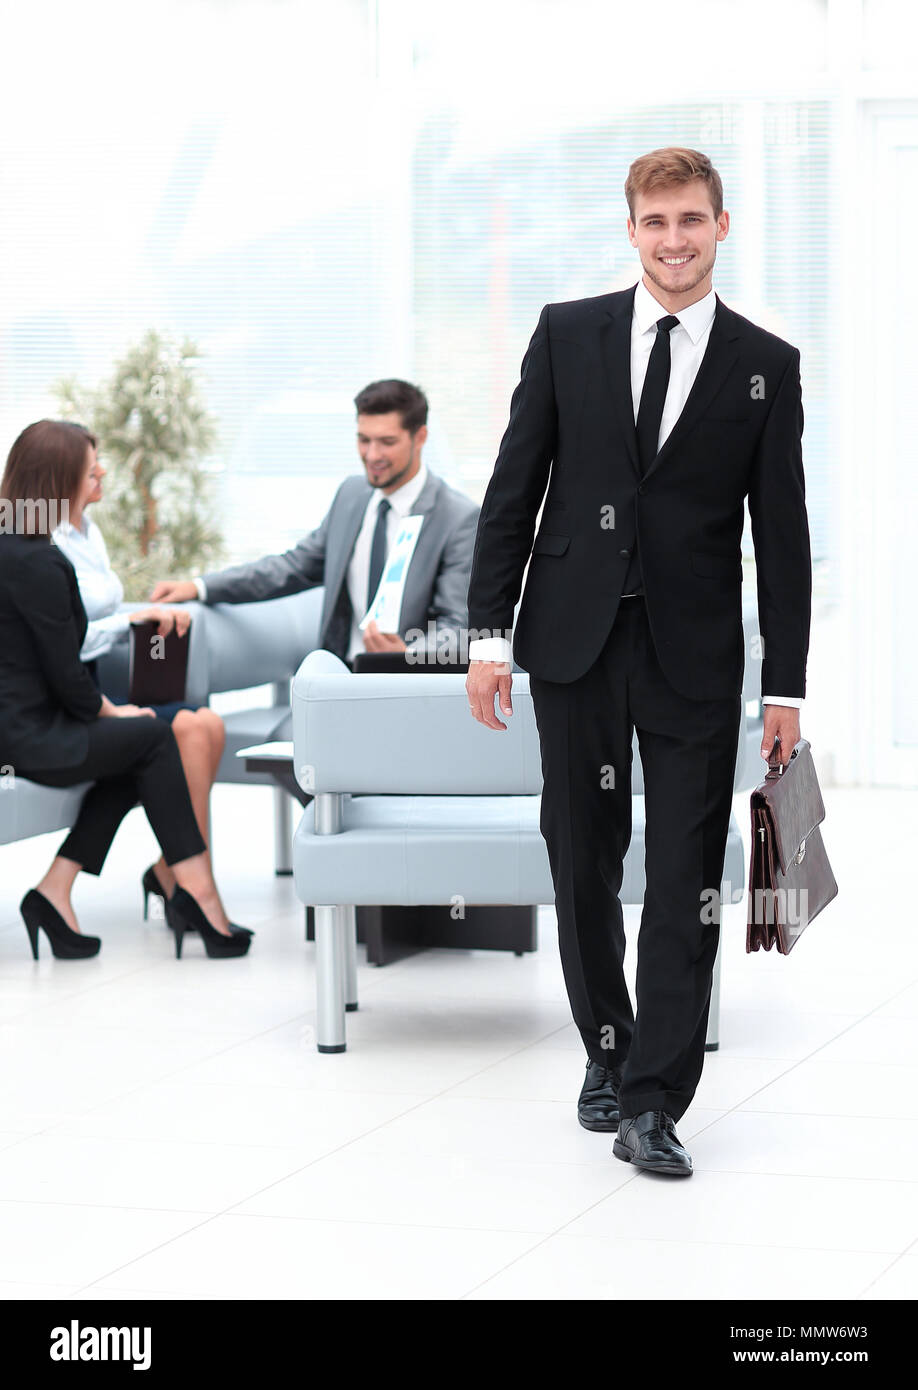 portrait in full growth. an experienced attorney out of the office. - Stock Image